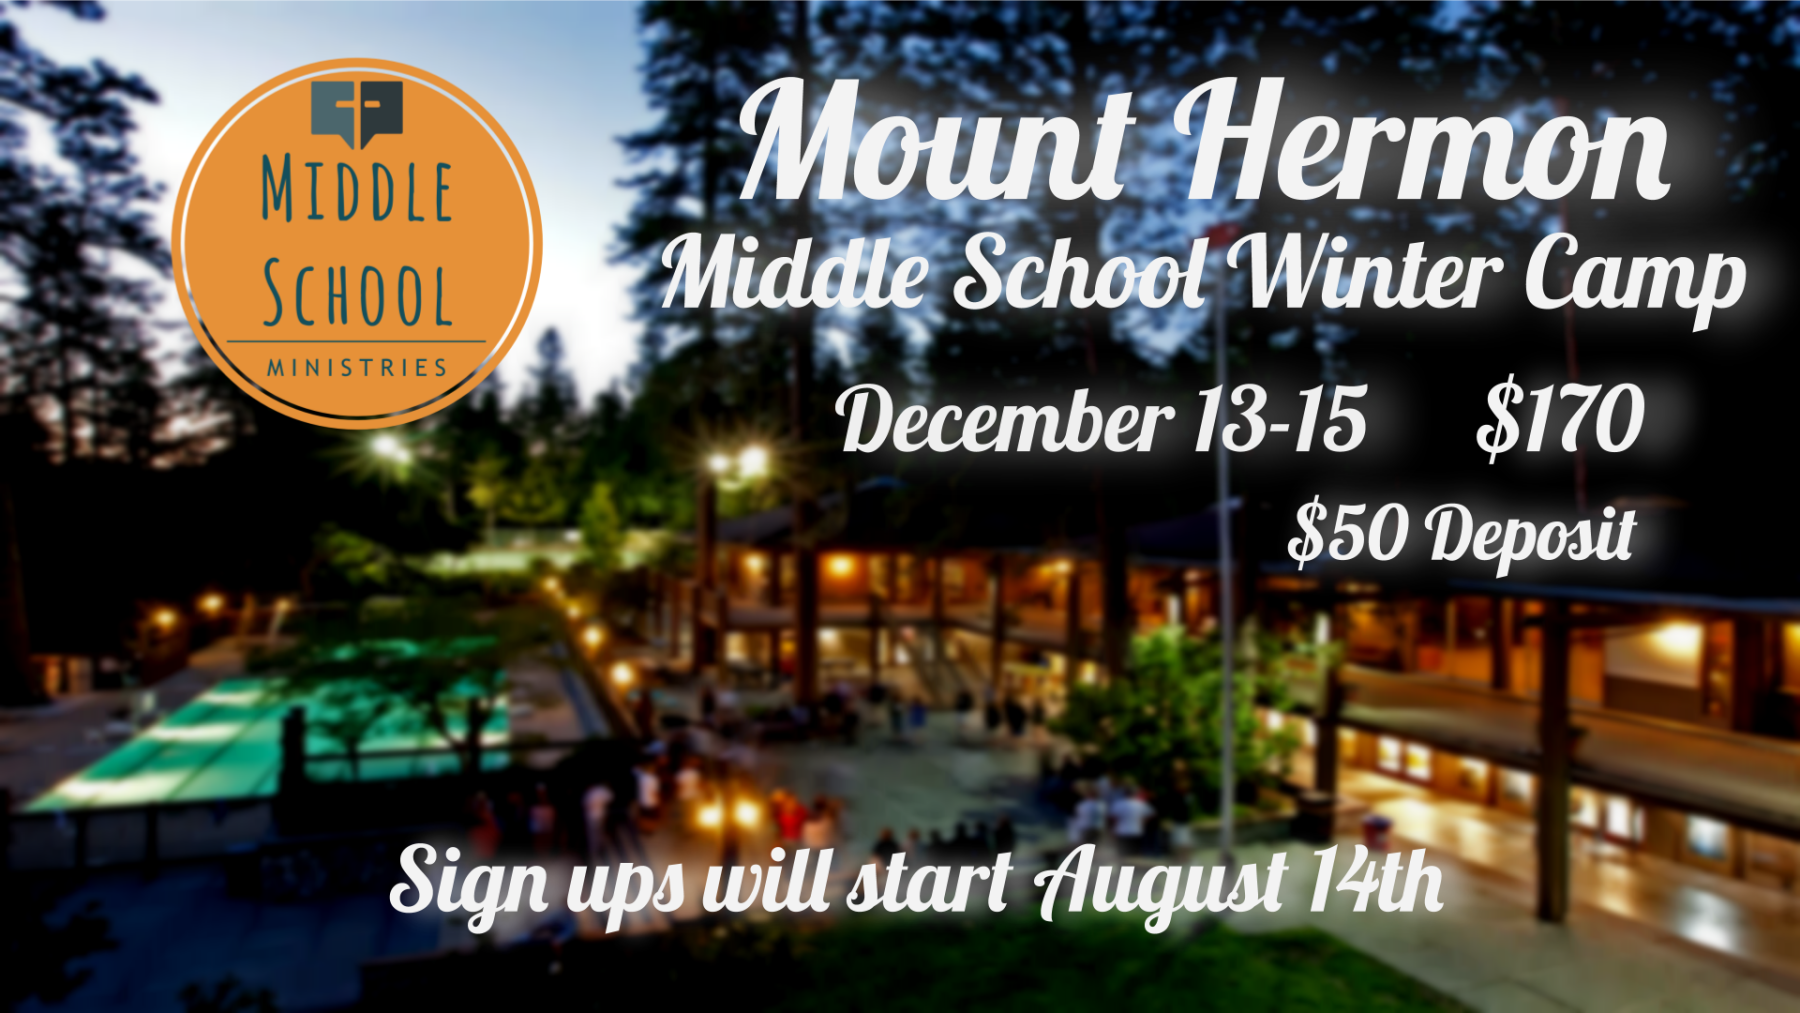 Middle School Winter Camp